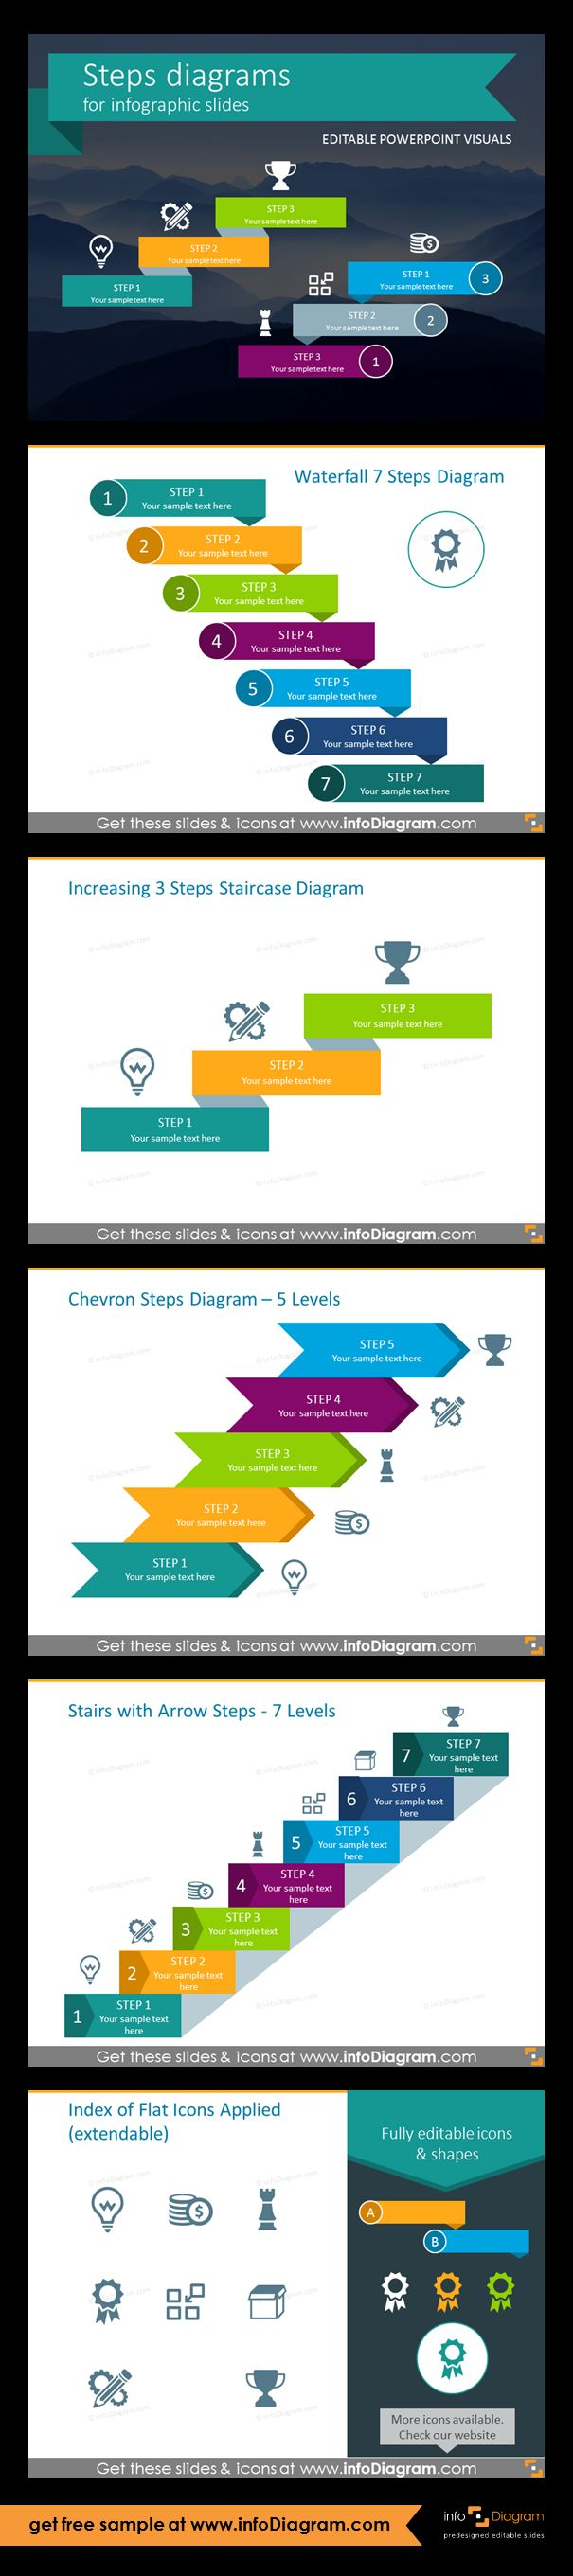 Template slides for Steps diagrams and Staircase infographics. Editable PowerPoint graphics for showing progress flow charts, project stages, planning phases and roadmaps by modern infographics. Fully editable style, size and colors. Waterfall 7-levels diagram, increasing 3-steps staircase, chevron steps - 5 levels, stairs with arrow steps - 7 levels, flat icons. Engage the user at the same time being expressive and compact within your slides.